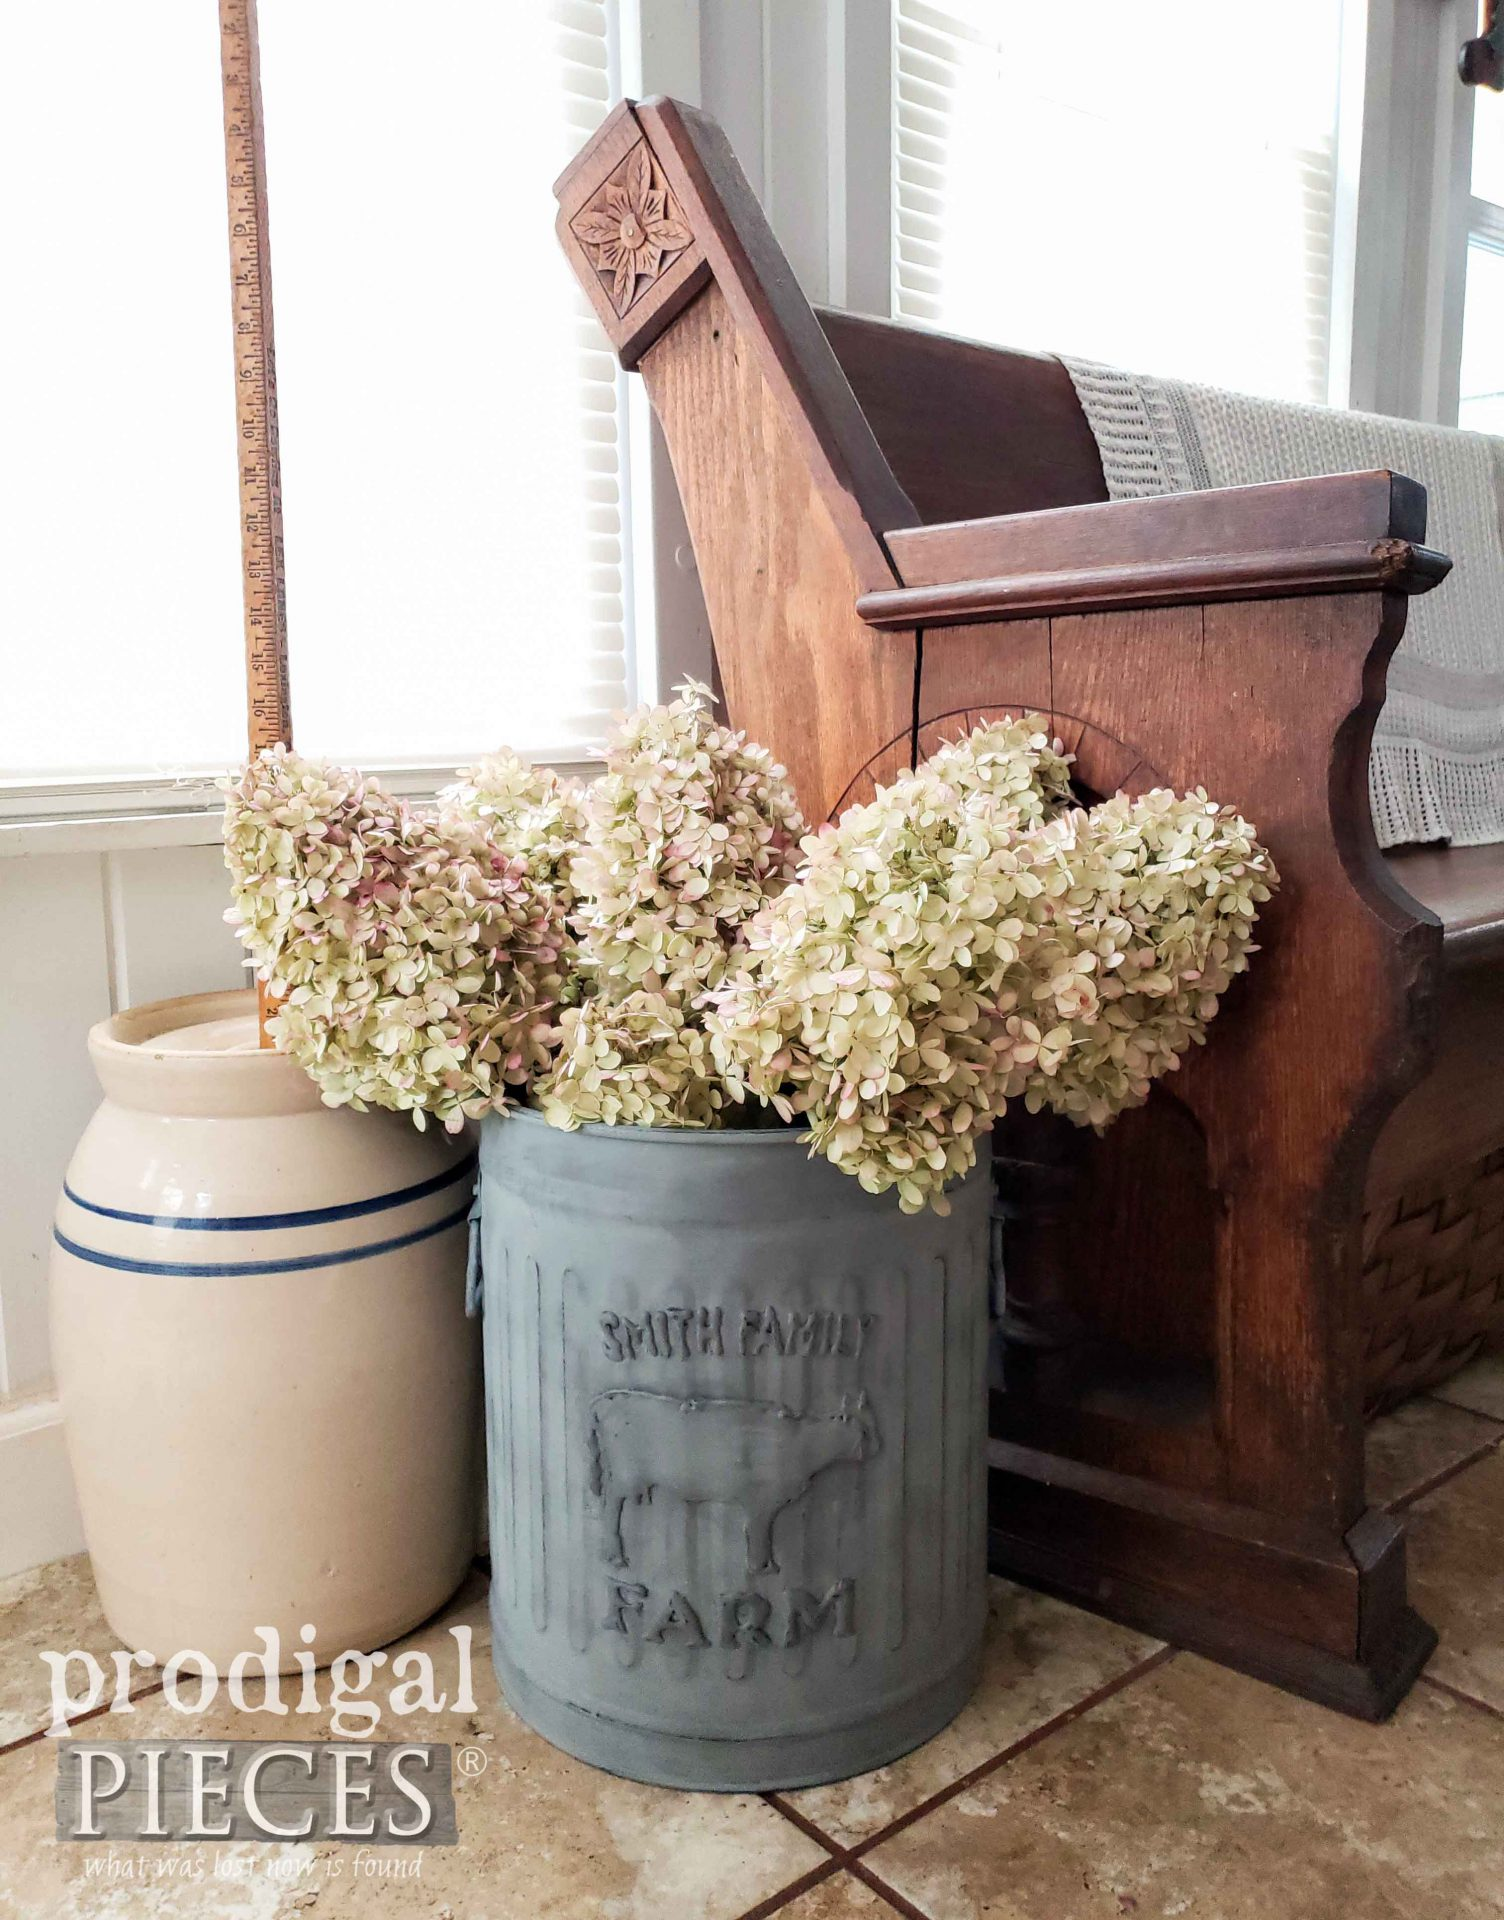 DIY Farmhouse Trash Can Upcycled  | How to Emboss by Larissa of Prodigal Pieces | prodigalpieces.com #prodigalpieces #farmhouse #diy #home #storage #homedecor